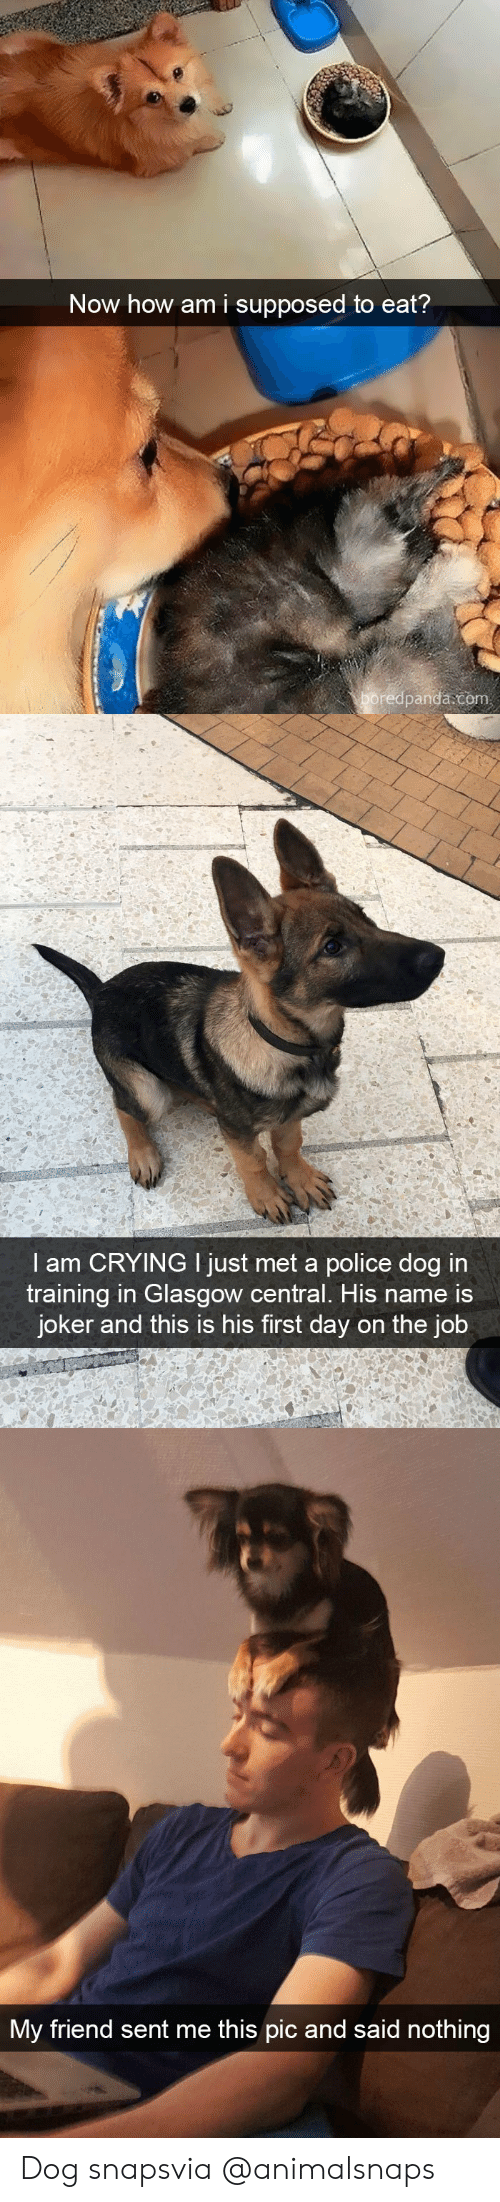 Crying, Joker, and Police: Now how am i supposed to eat?  boredpanda.com   I am CRYING I just met a police dog i  training in Glasgow central. His name is  joker and this is his first day on the job   My friend sent me this pic and said  IC  nothing Dog snapsvia @animalsnaps​